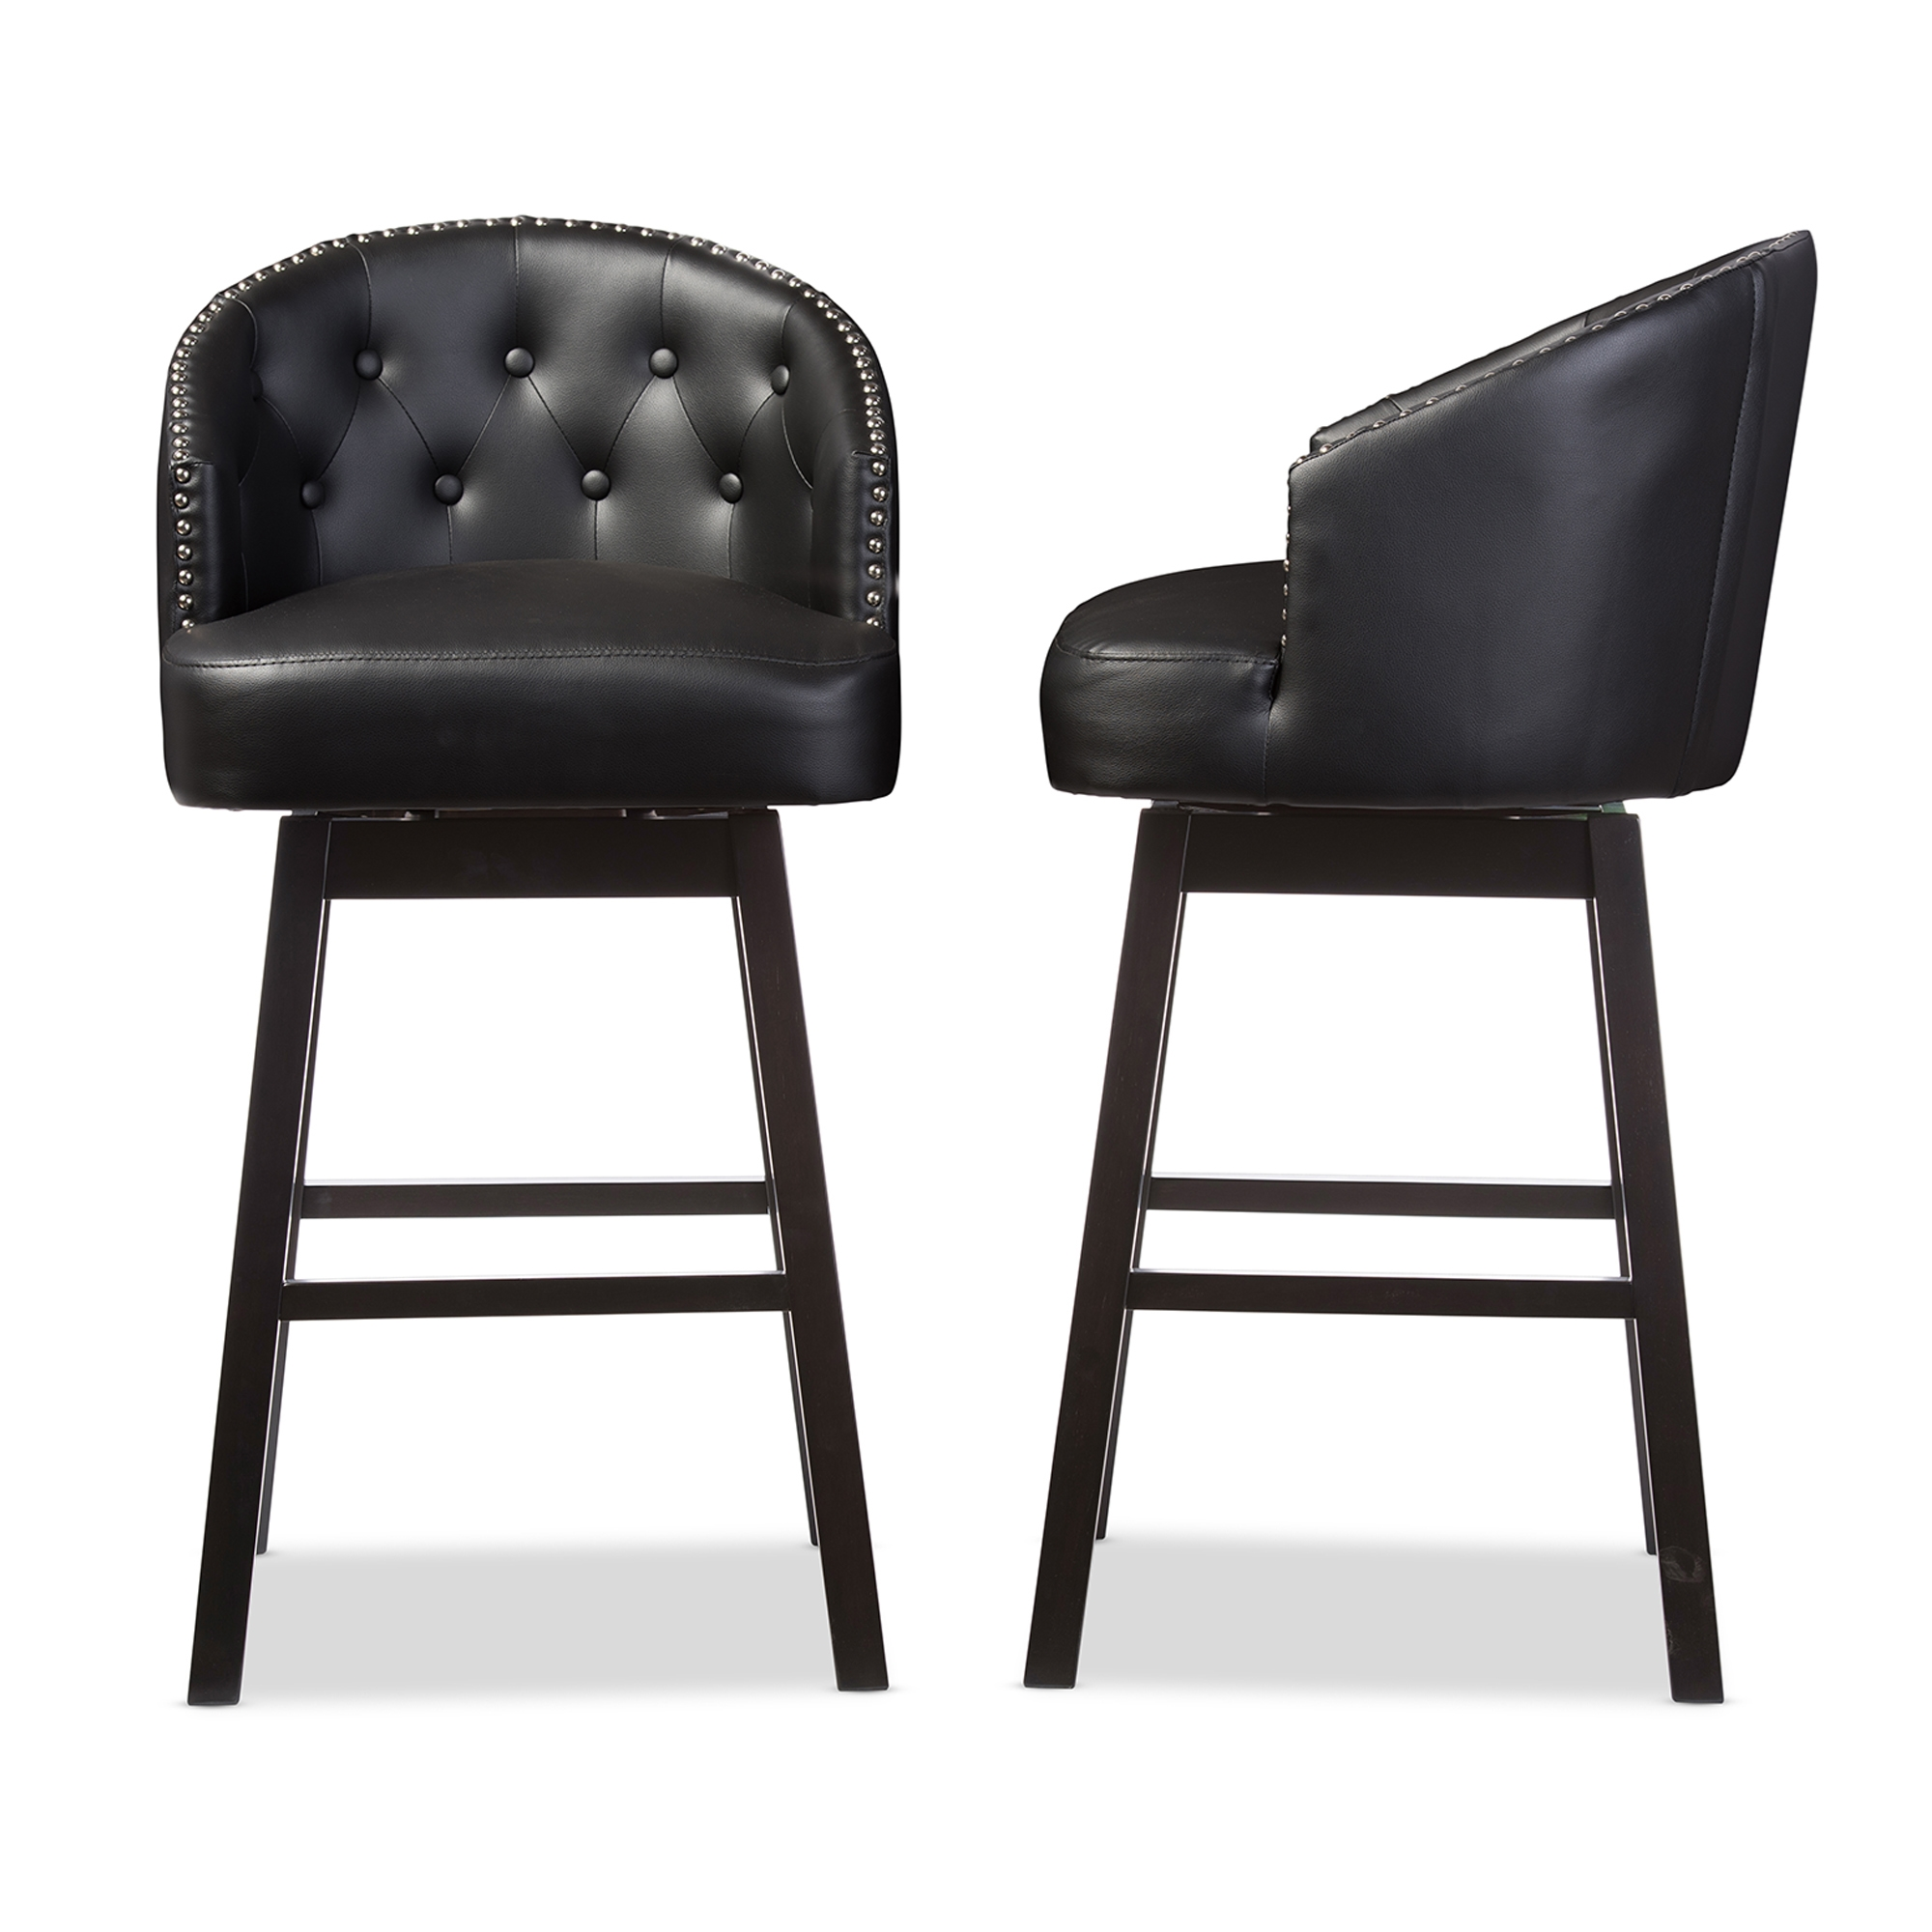 Baxton Studio Avril Modern and Contemporary Black Faux Leather Tufted Swivel Barstool with Nail heads Trim  sc 1 st  Baxton Studio Outlet & Baxton Studio Avril Modern and Contemporary Black Faux Leather ... islam-shia.org